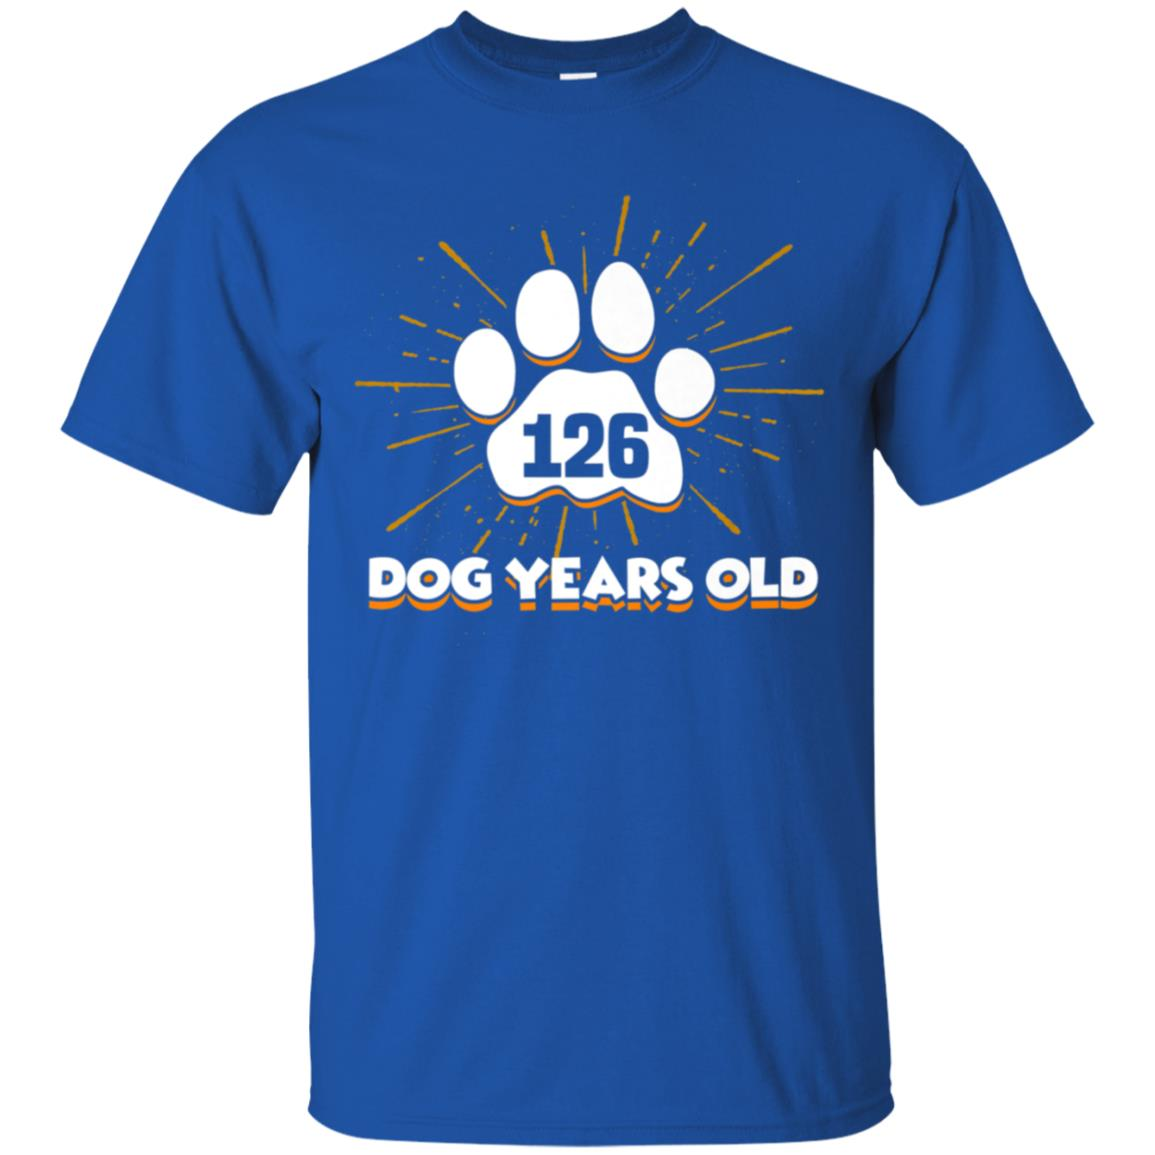 126 Dogs Years Old T Shirt 18th Birthday For Dog Lover